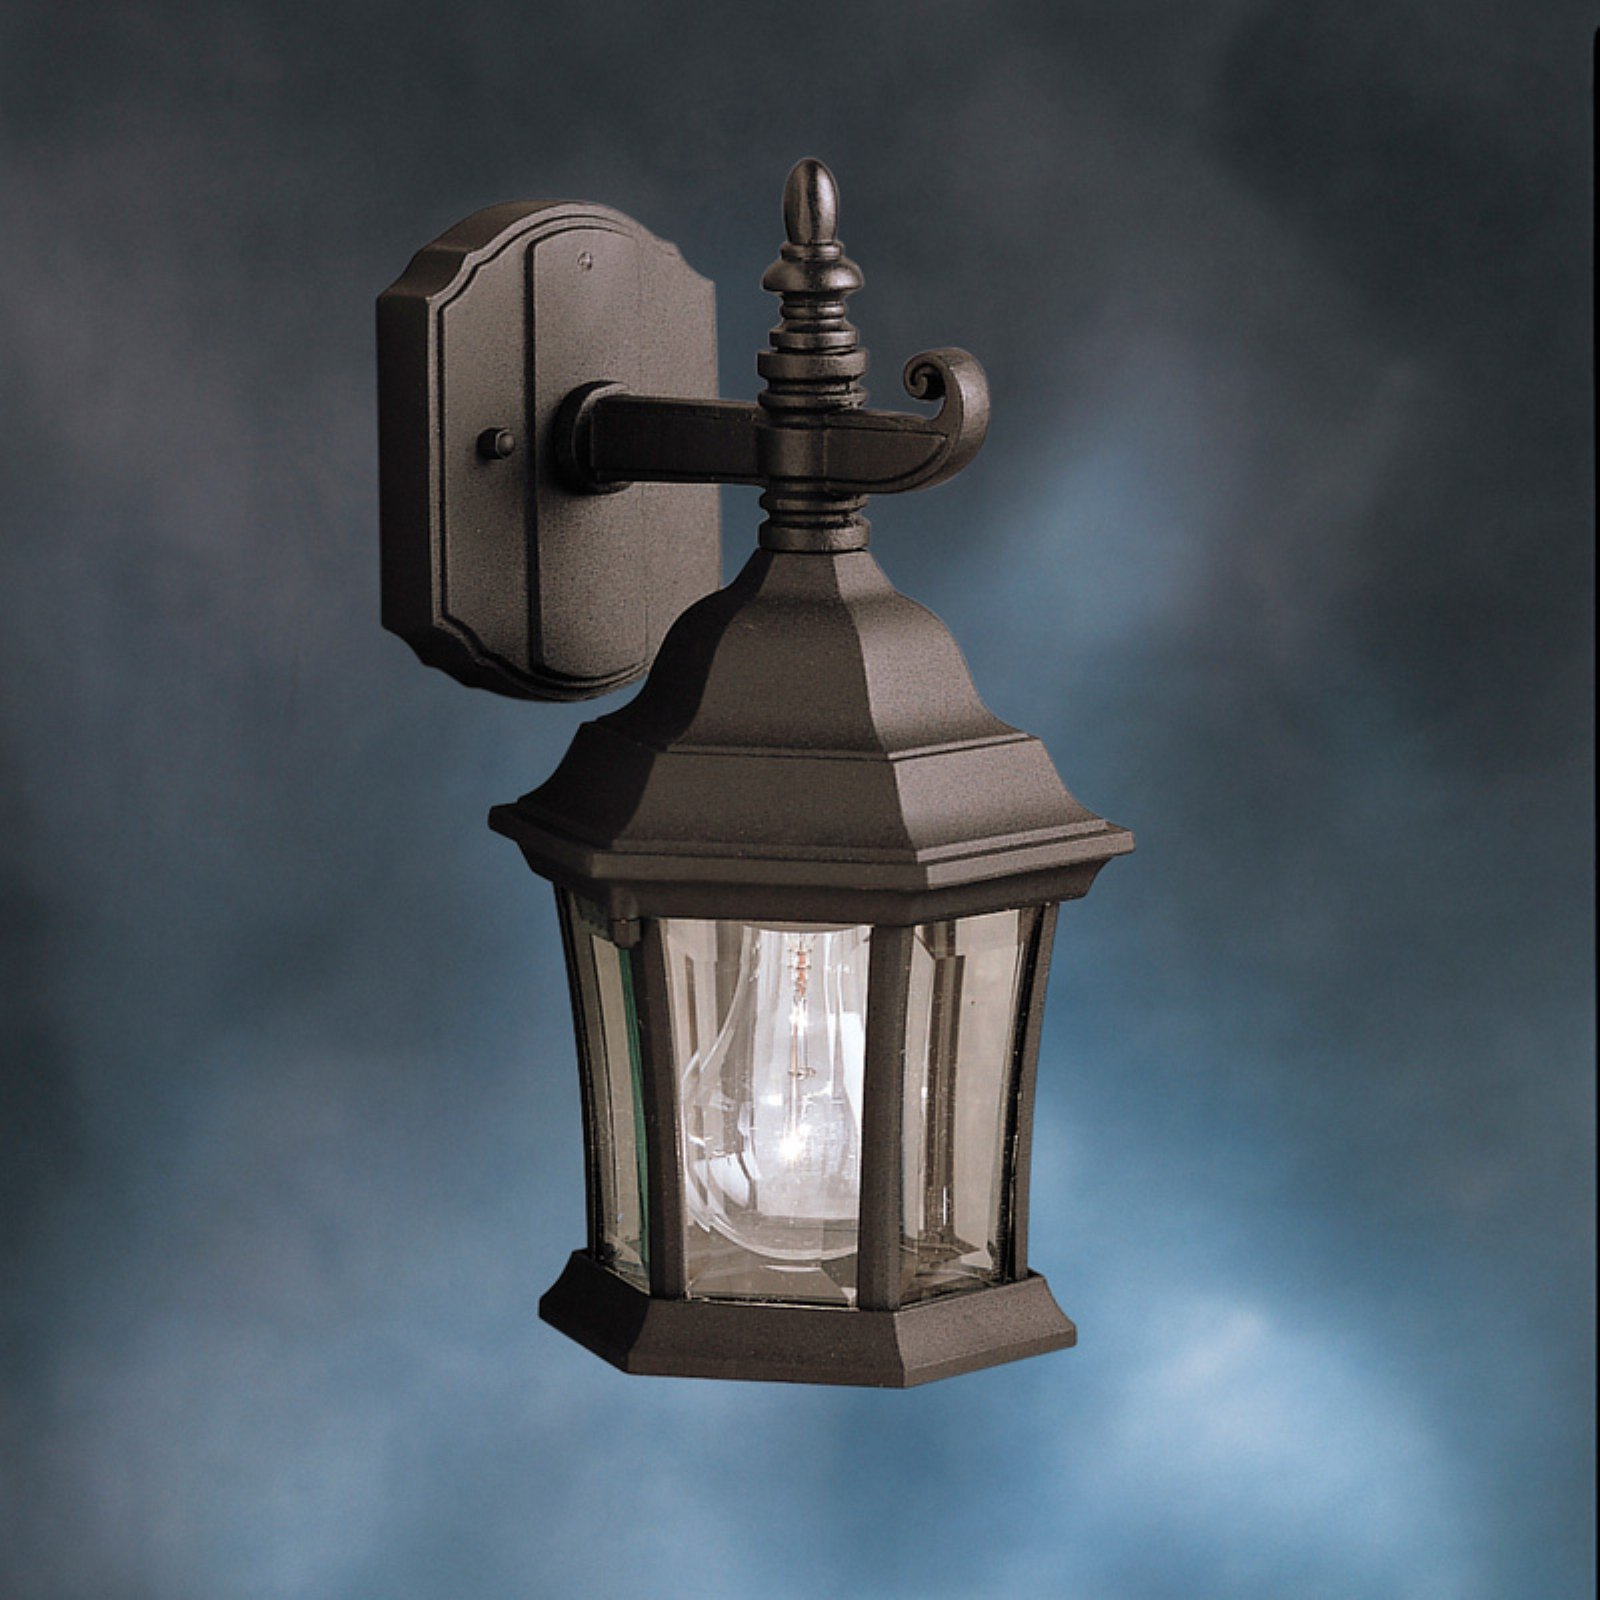 Kichler Townhouse 9788 Outdoor Wall Lantern - 6.5 in.